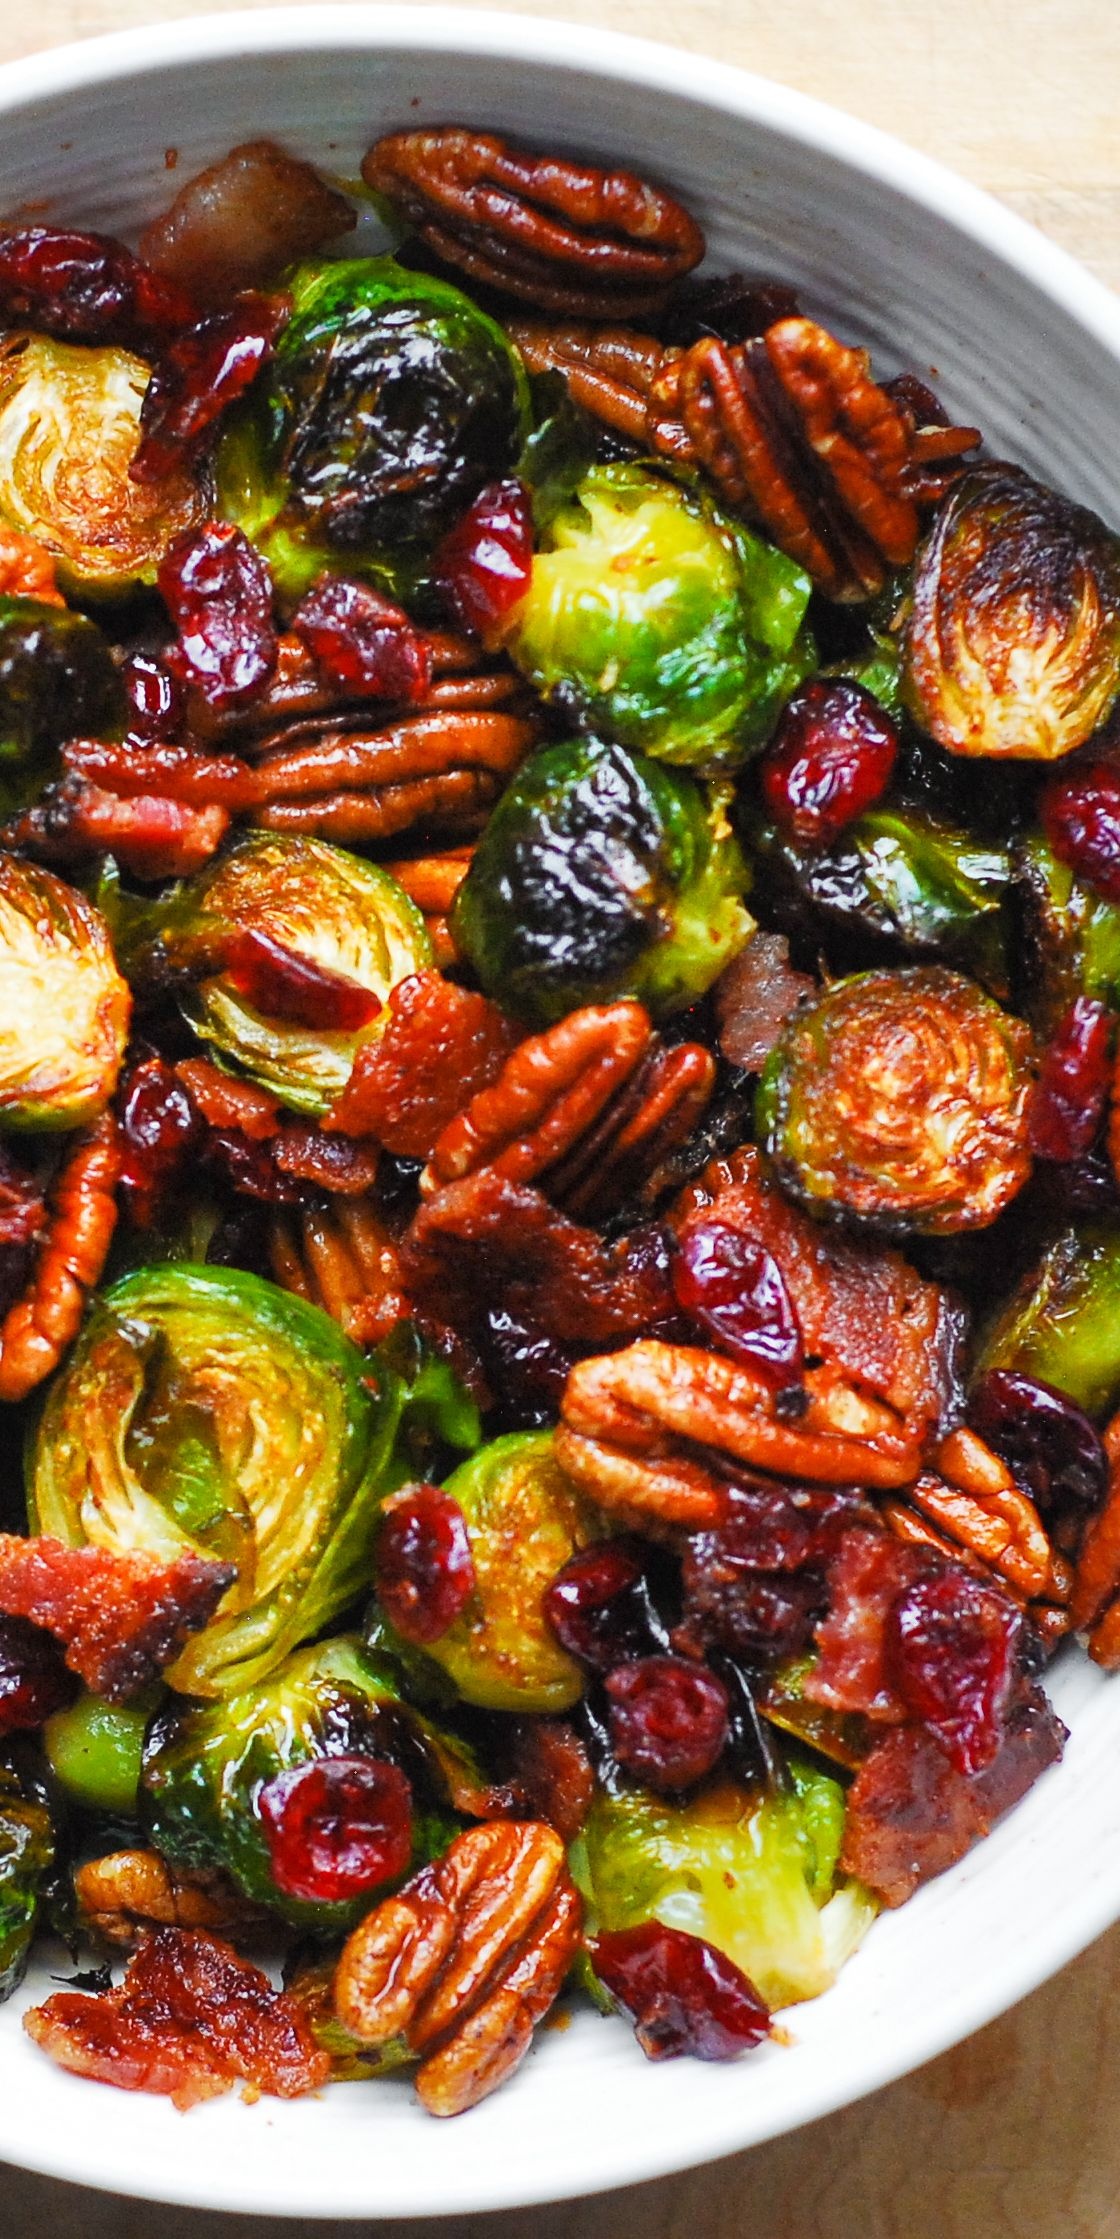 Roasted Brussels Sprouts with Bacon, Toasted Pecans, and Dried Cranberries #brusselsproutrecipes